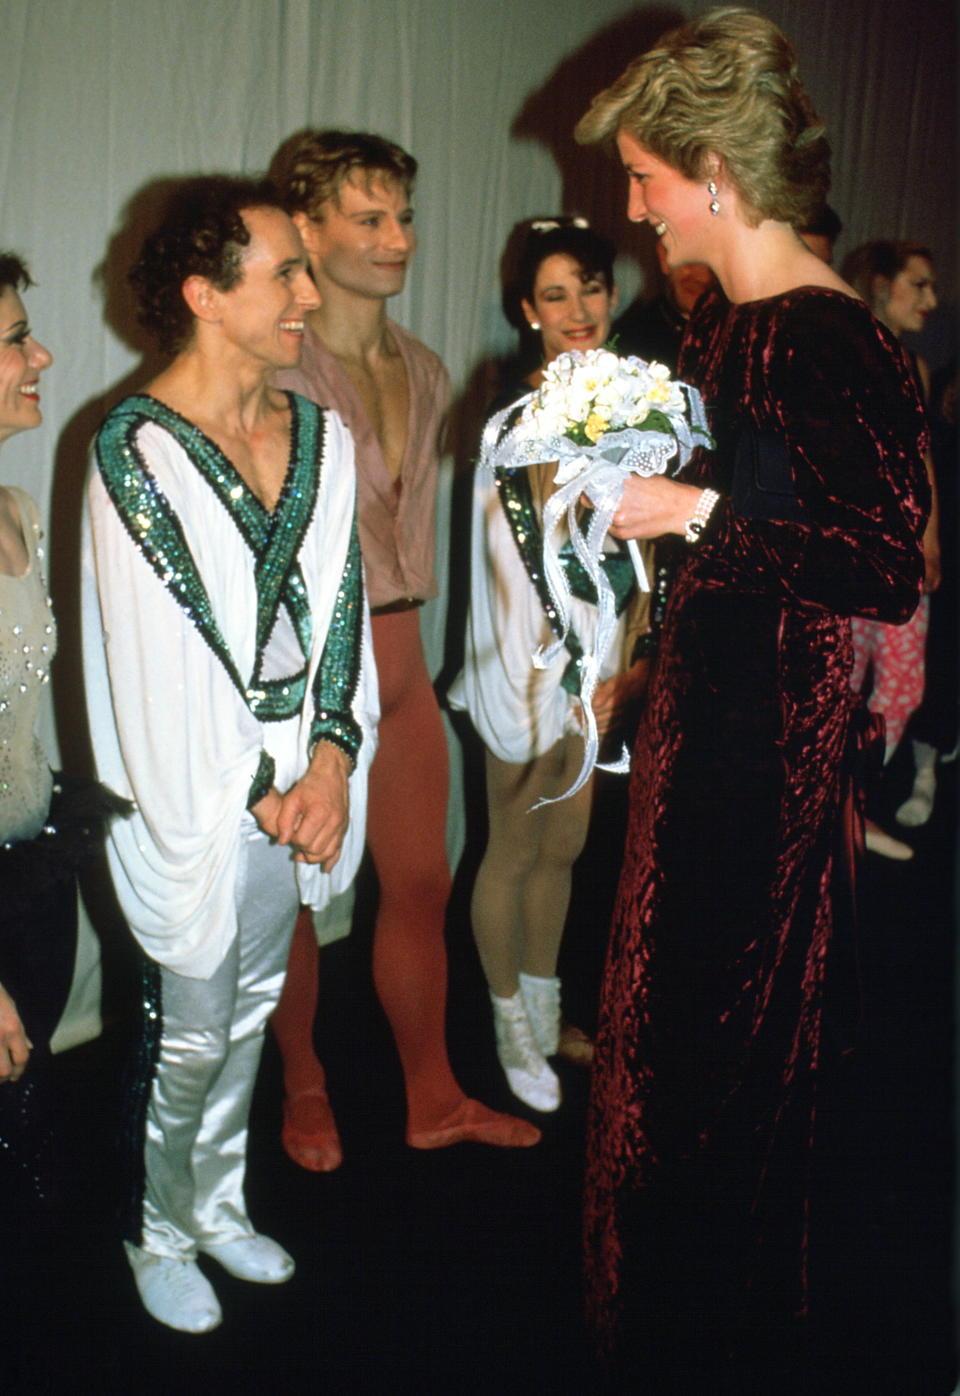 LONDON, UNITED KINGDOM - DECEMBER 15:  Diana, Princes Of Wales, Meeting Ballet Dancer Wayne Sleep At Sadler's Wells Theatre (exact Day Date Not Certain)  (Photo by Tim Graham Photo Library via Getty Images)